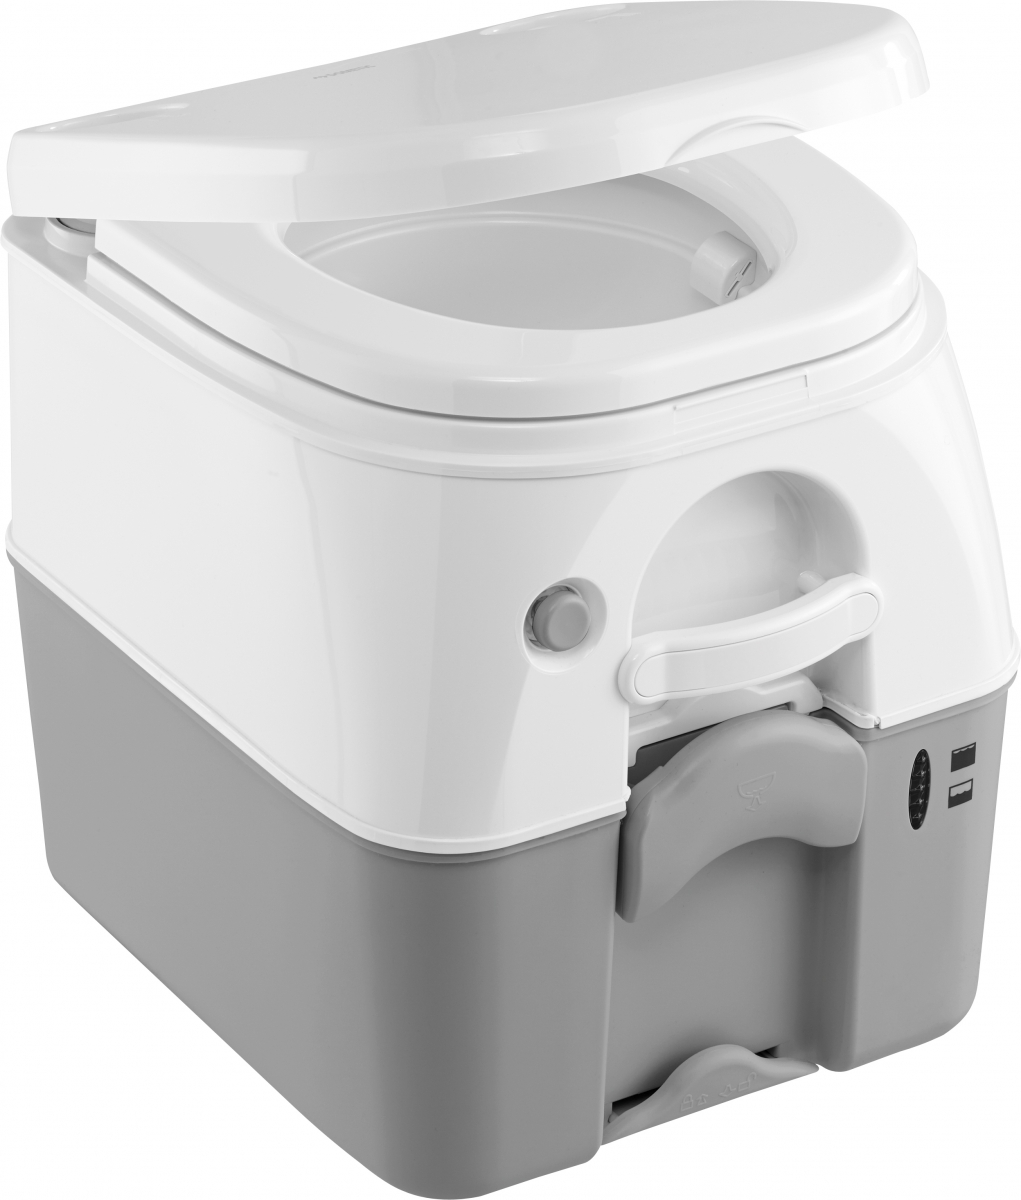 Dometic Campingtoilette 976 grau